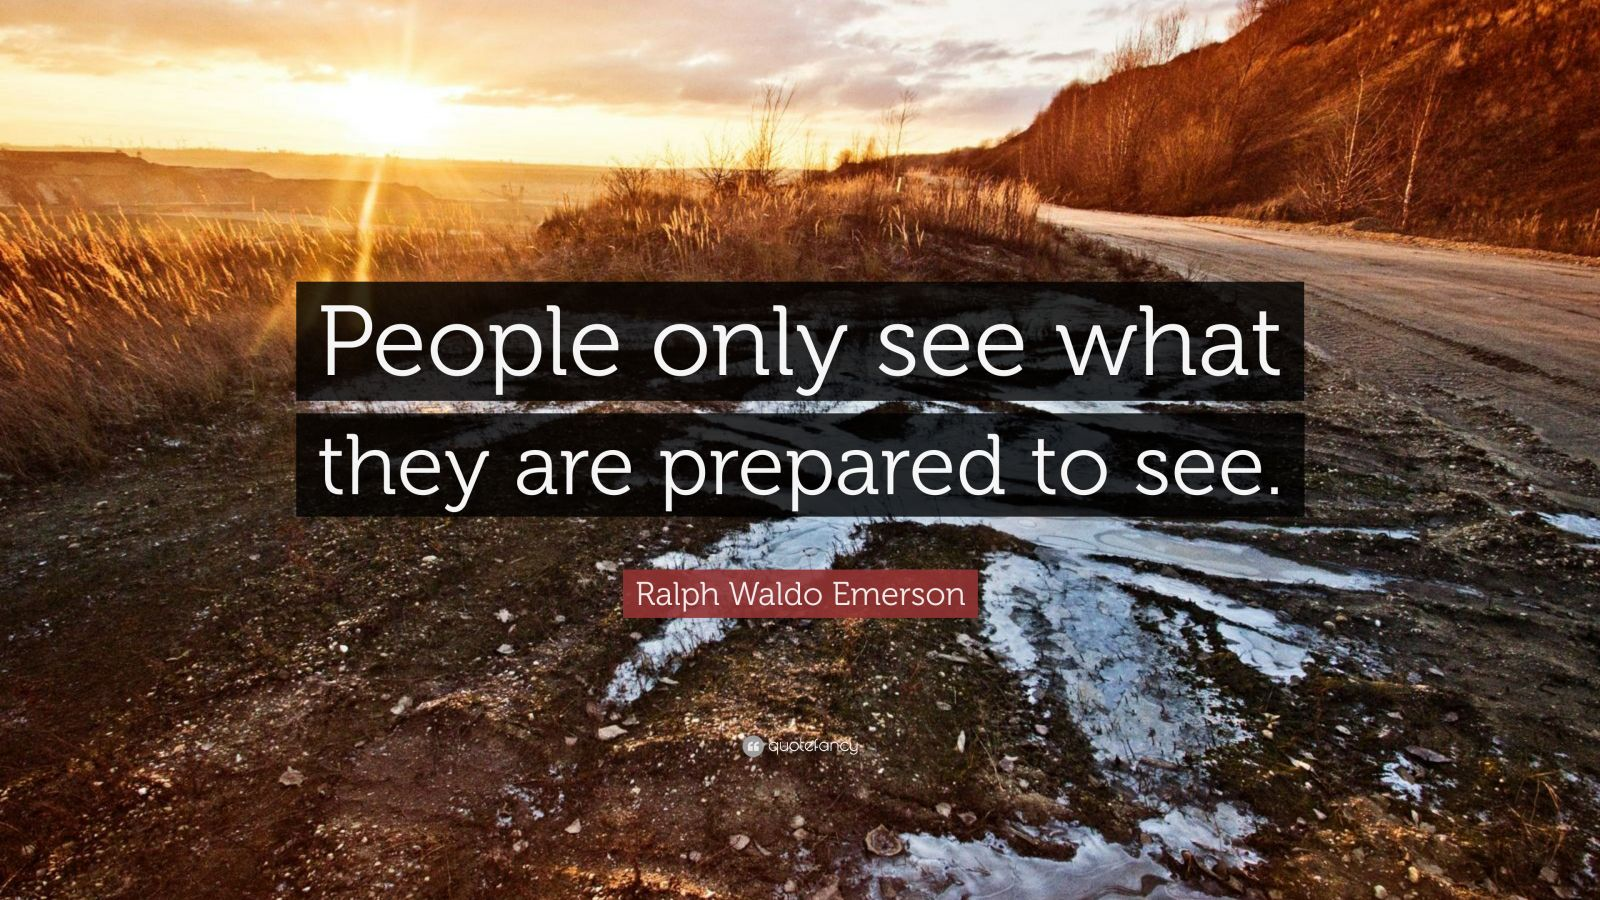 people only see what they are prepared to see essay People only see what they are prepared to see: an analyzation of the quote  by hassan ansari  people see what they want to see essay.